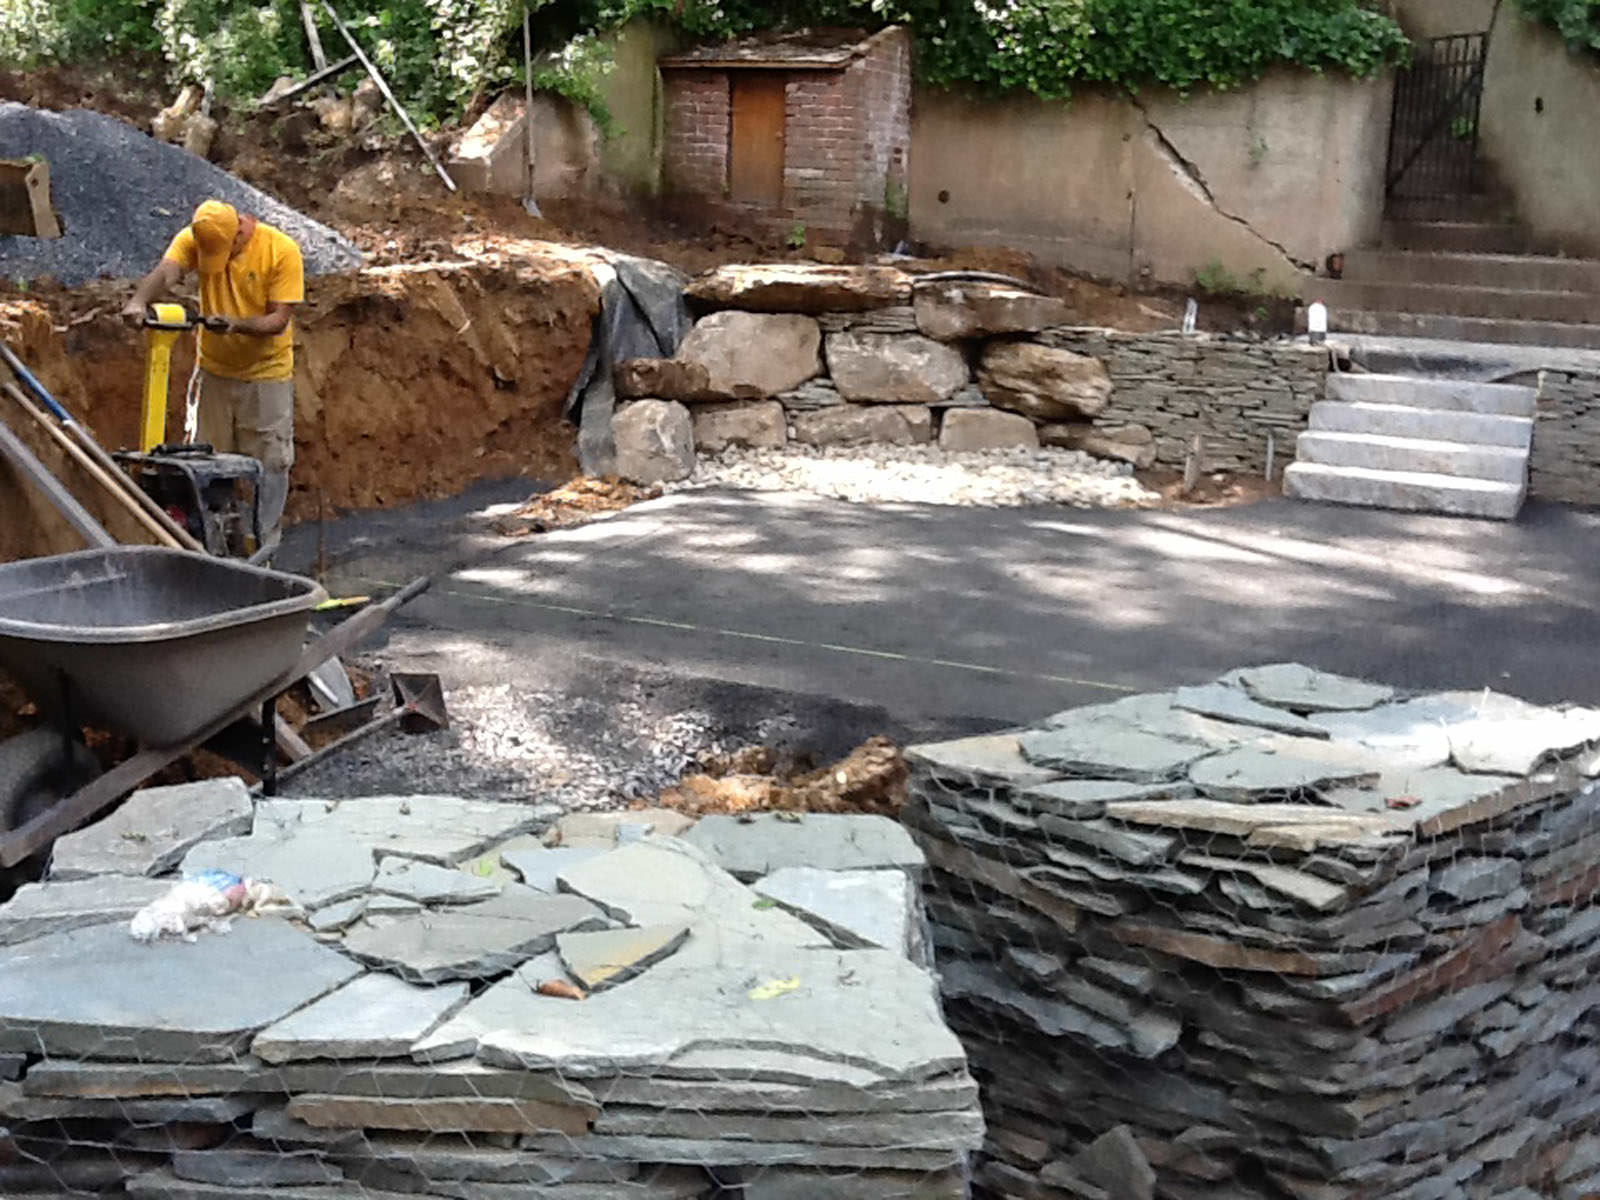 Once the space was leveled with precision, we were able to add the boulder for the water feature and prepare to start laying the flagstone patio!